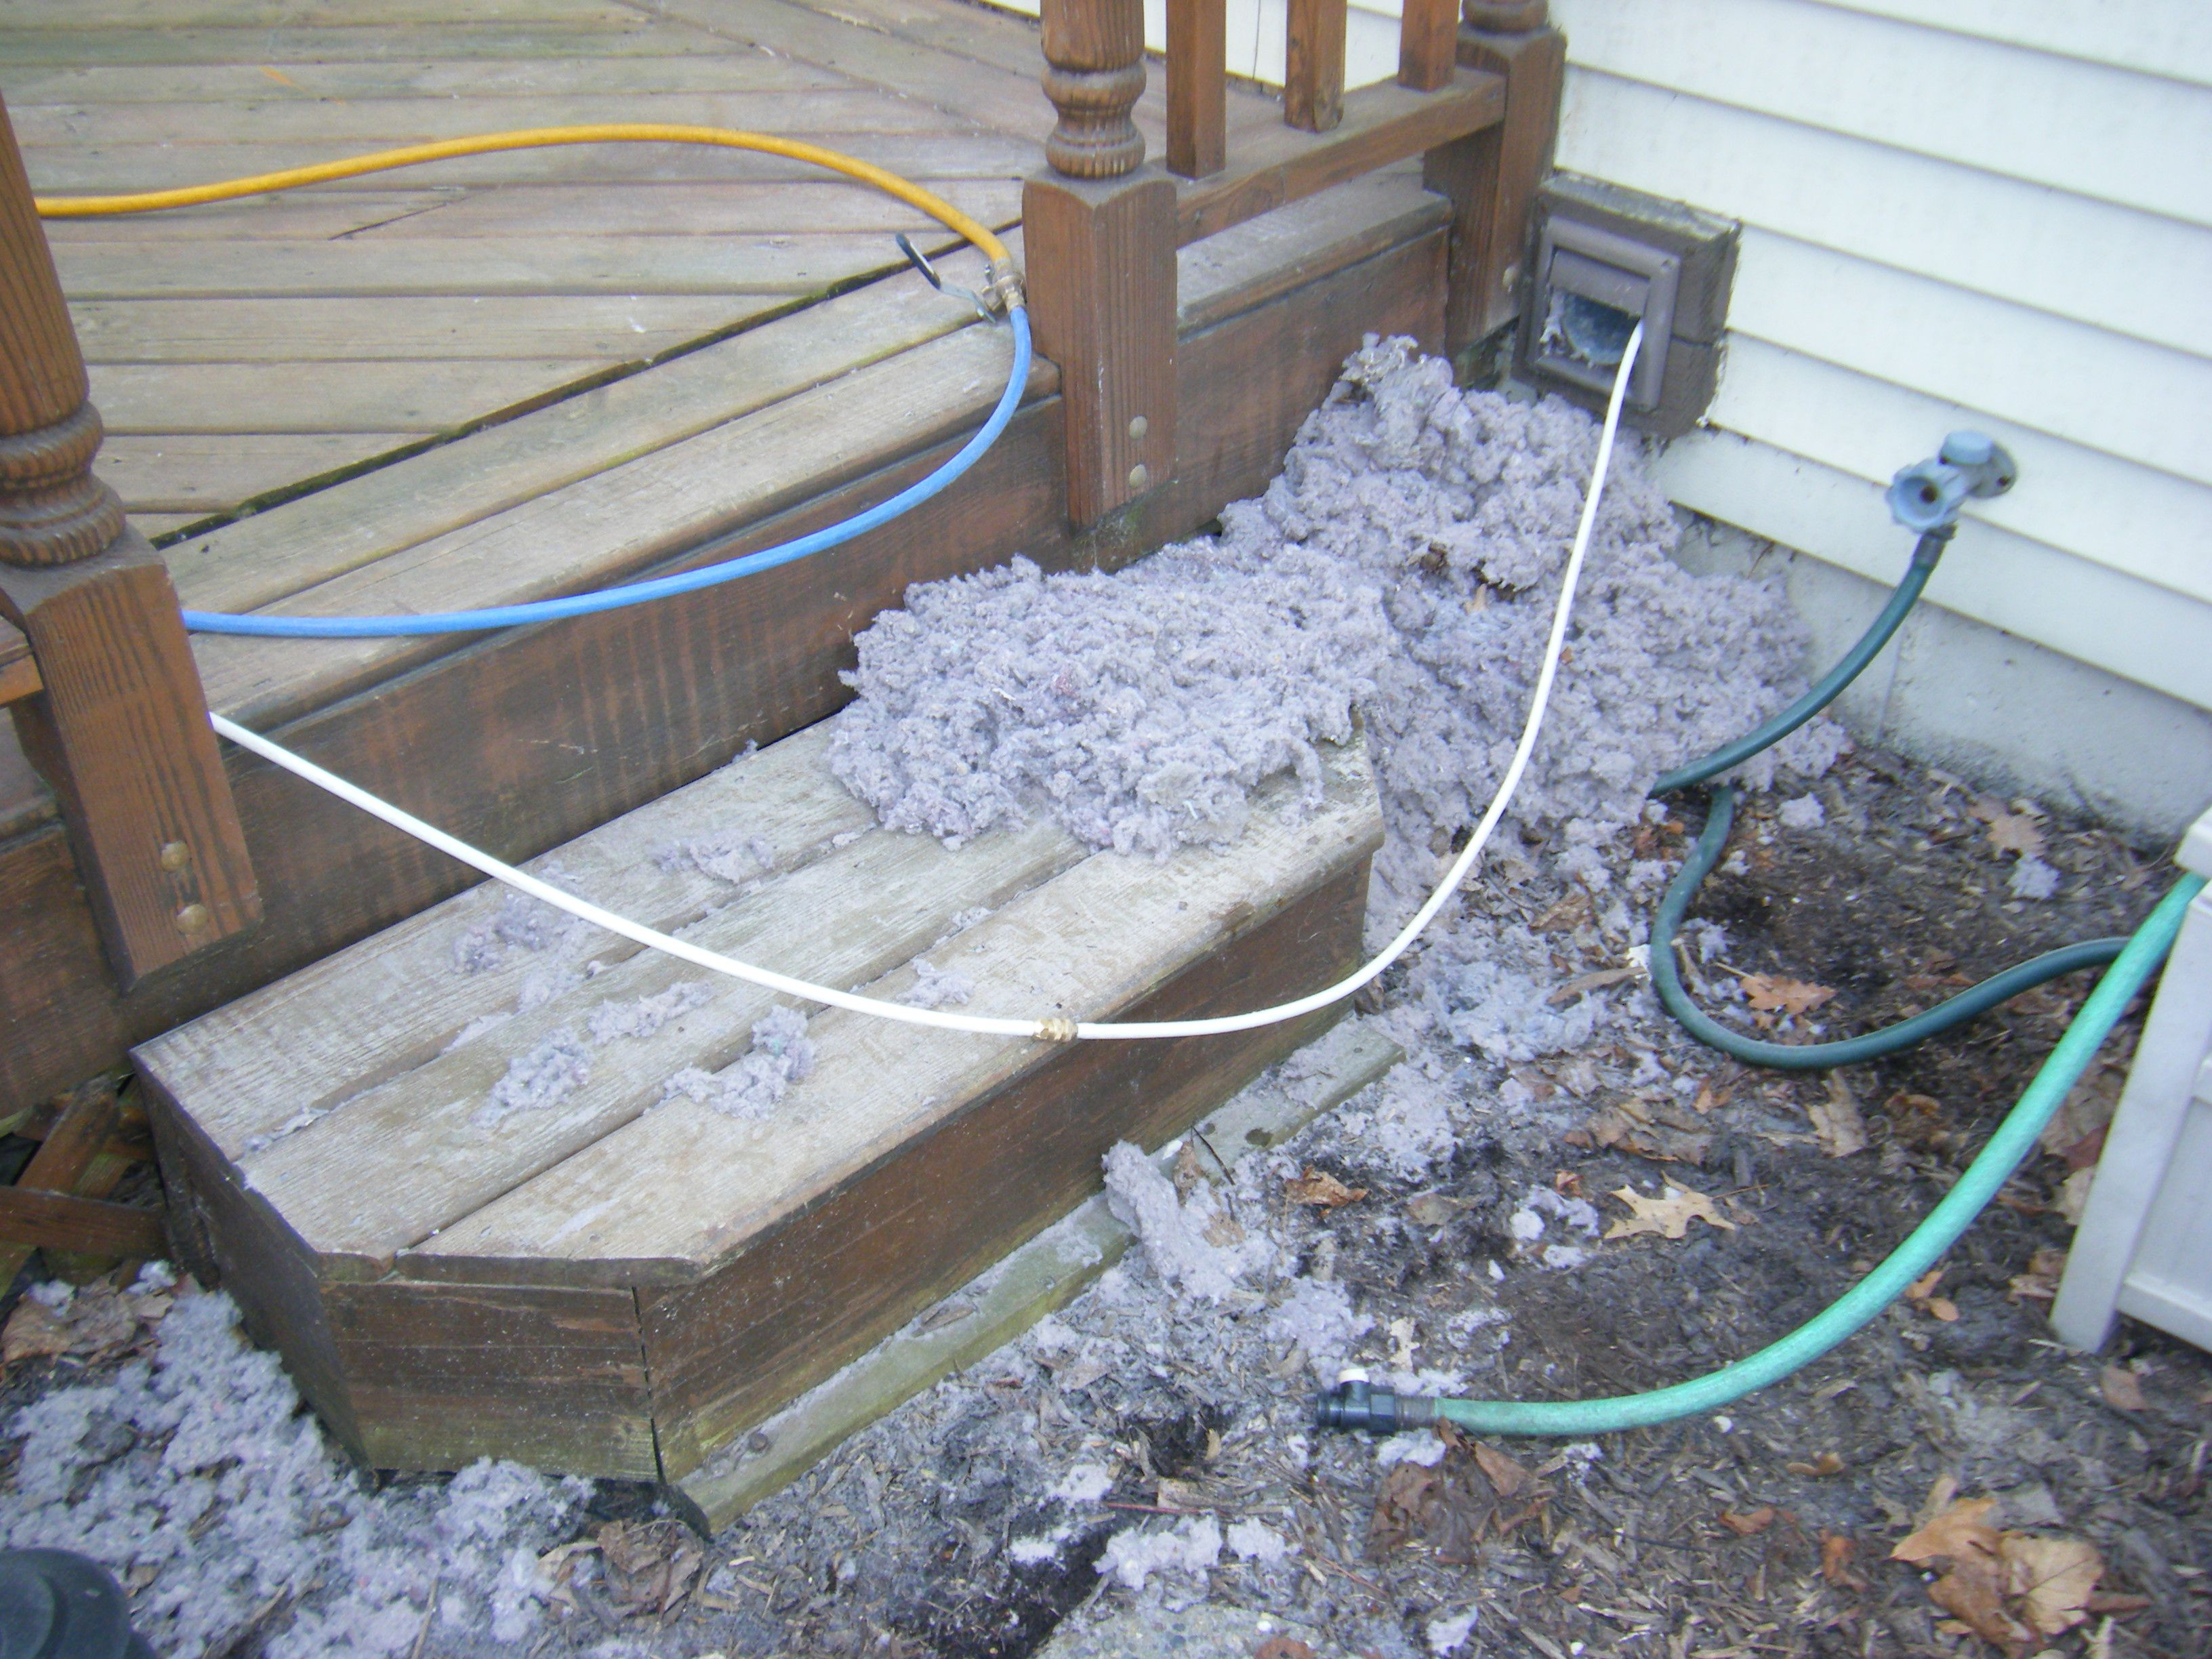 Dryer Vent Clean Annually Clean air ducts, Clean dryer